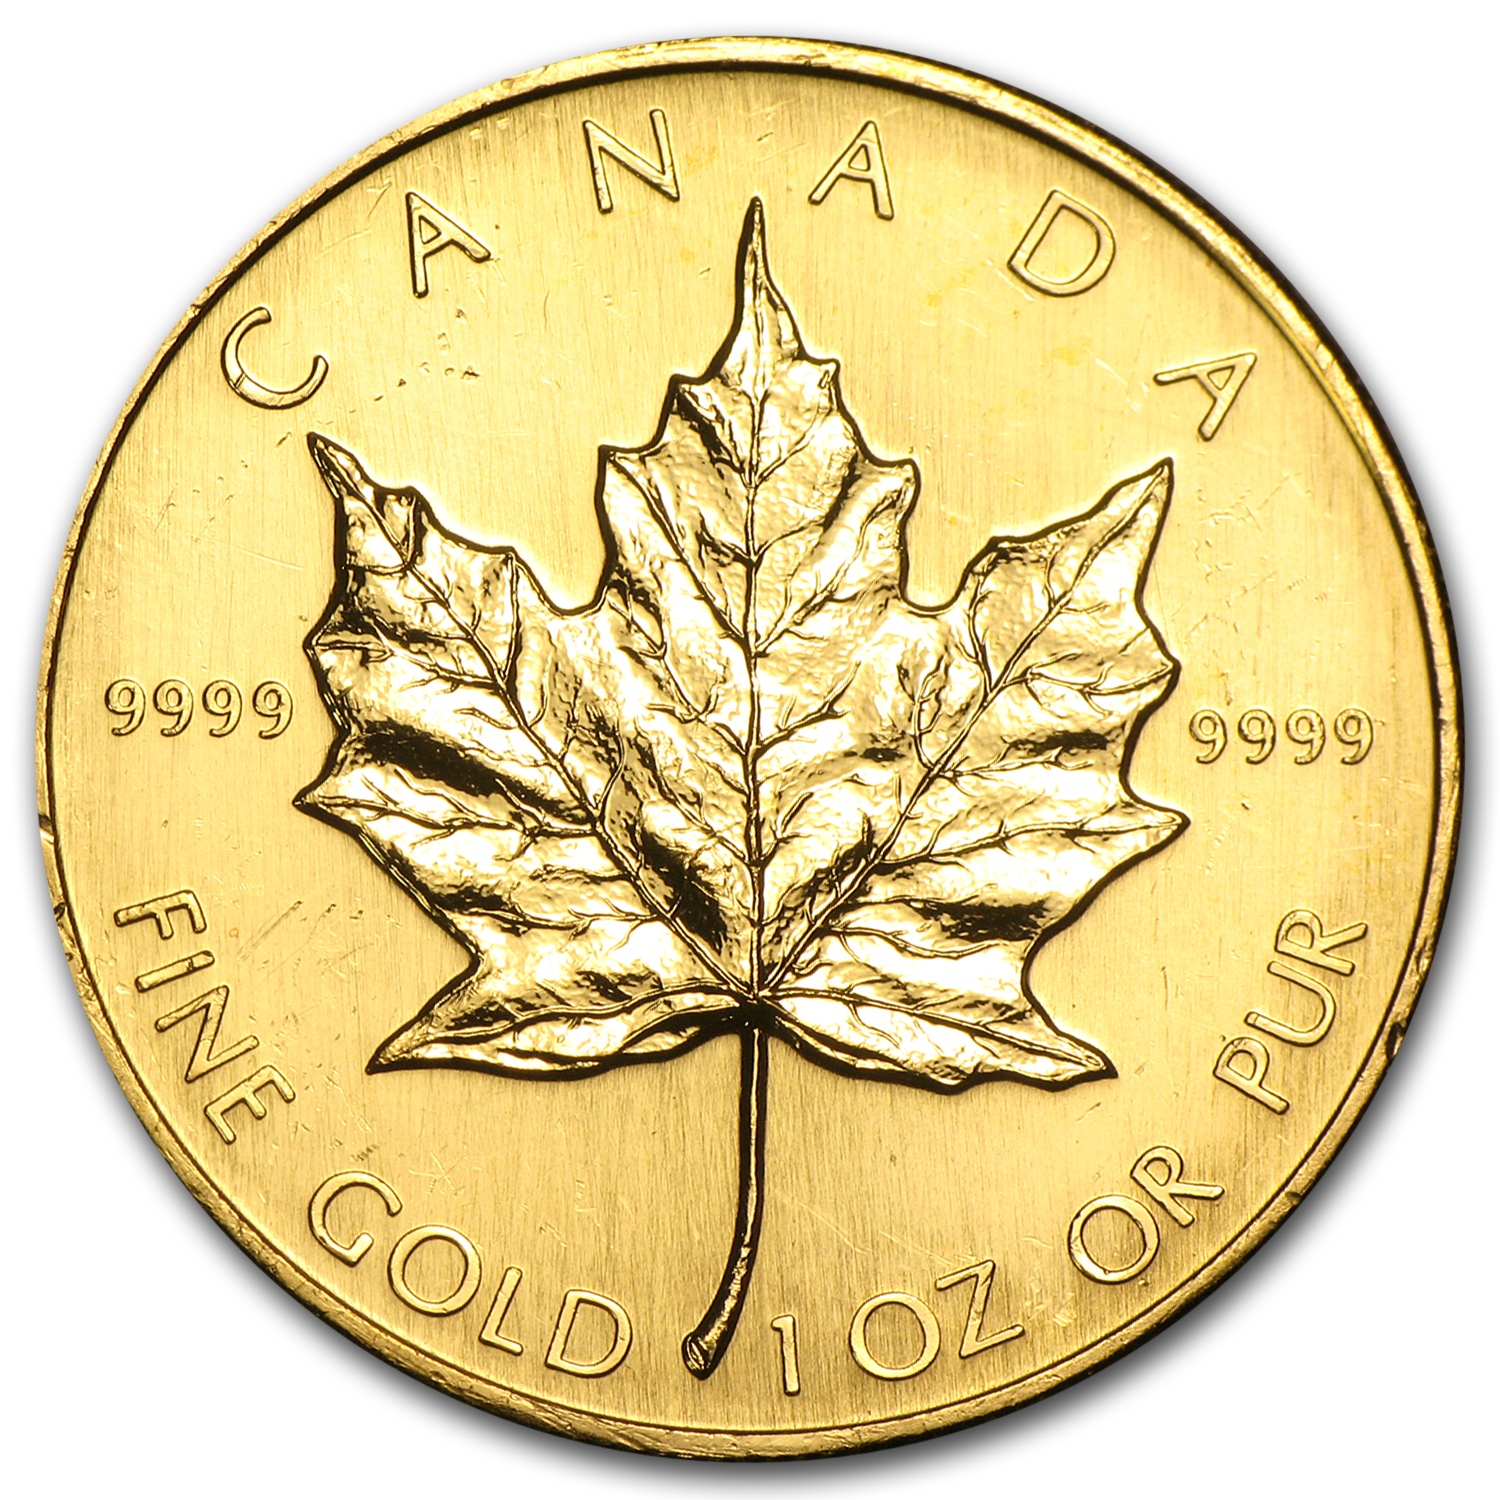 1986 1 oz Gold Canadian Maple Leaf BU